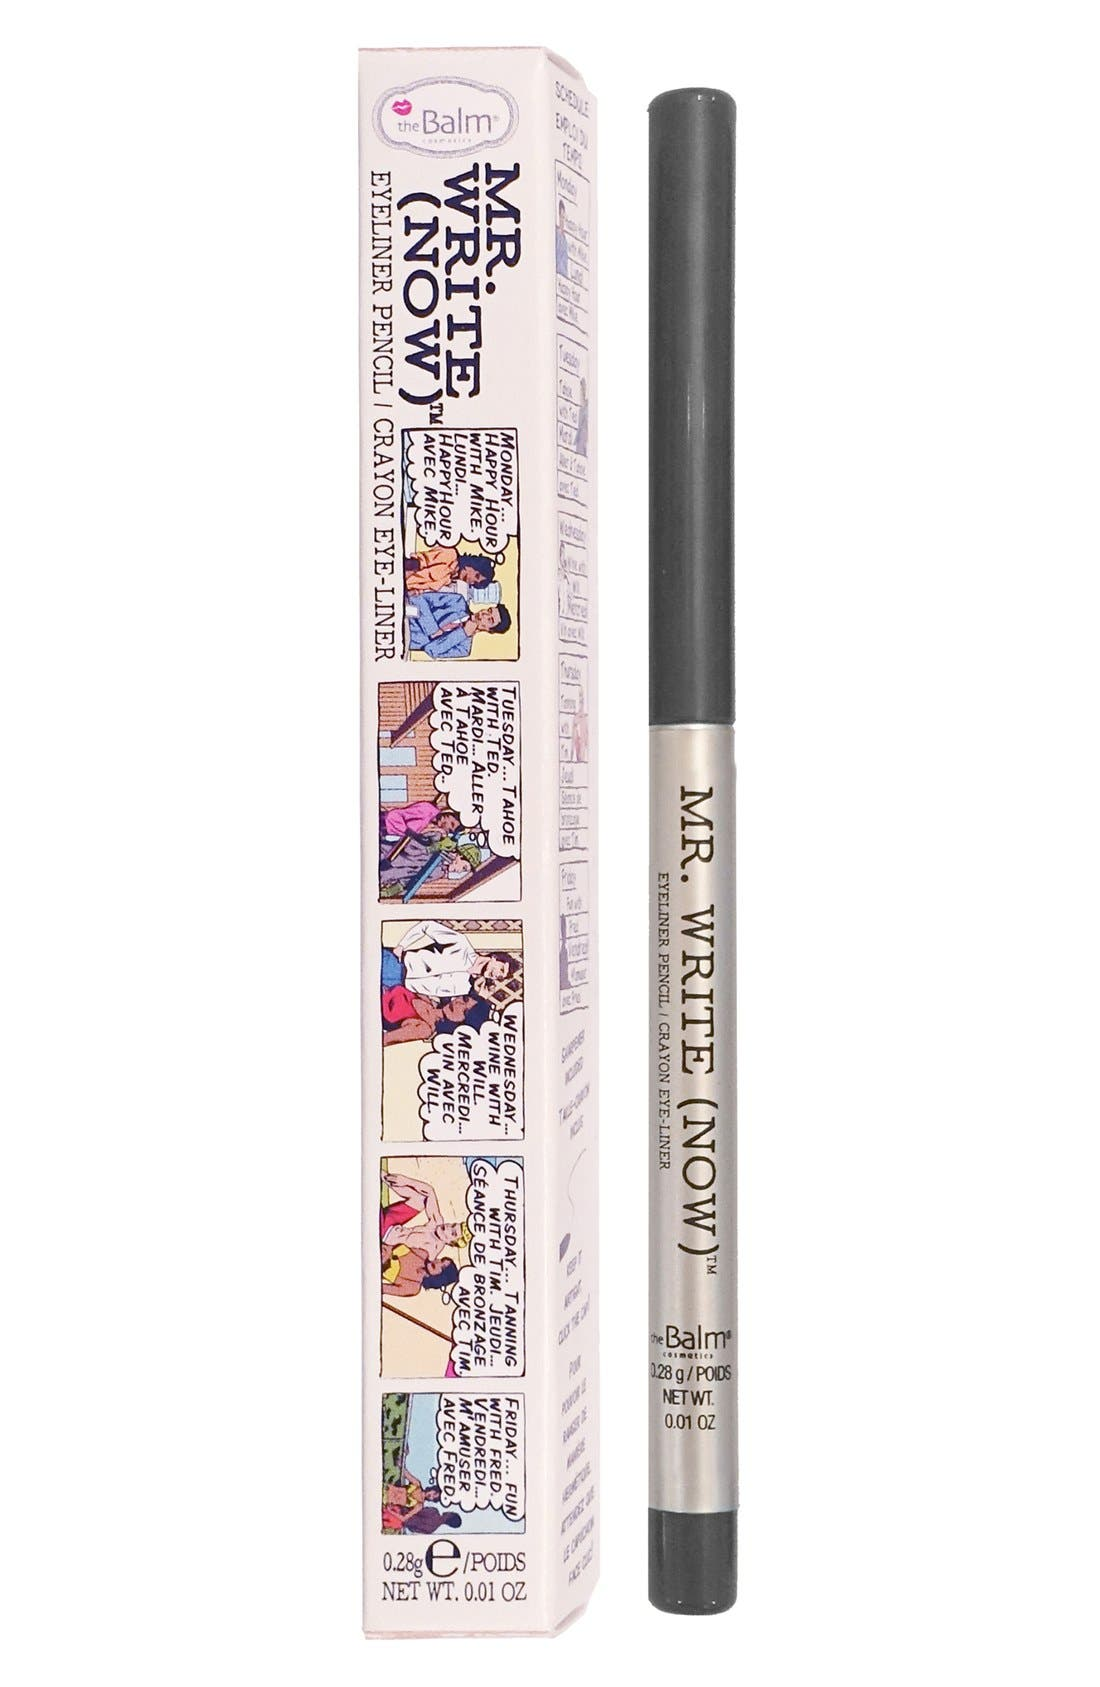 theBalm® 'Mr. Write Now' Eyeliner Pencil